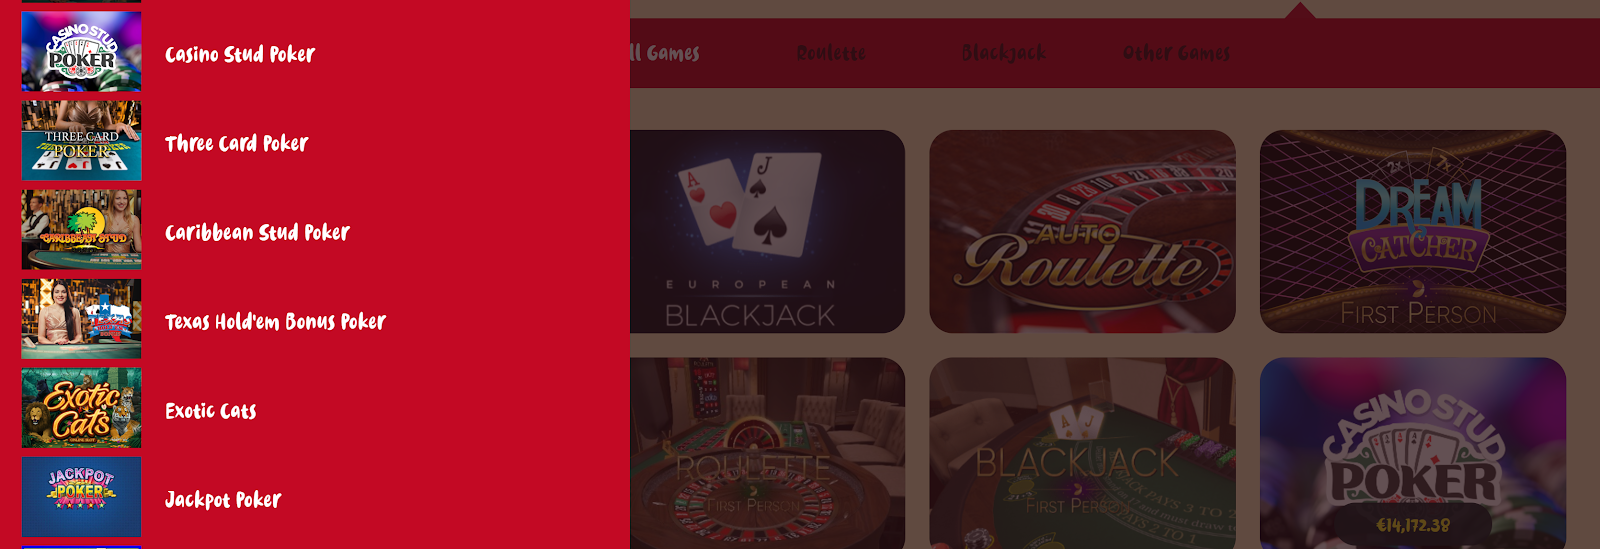 Casoola Casino has lots of great poker games that you can play